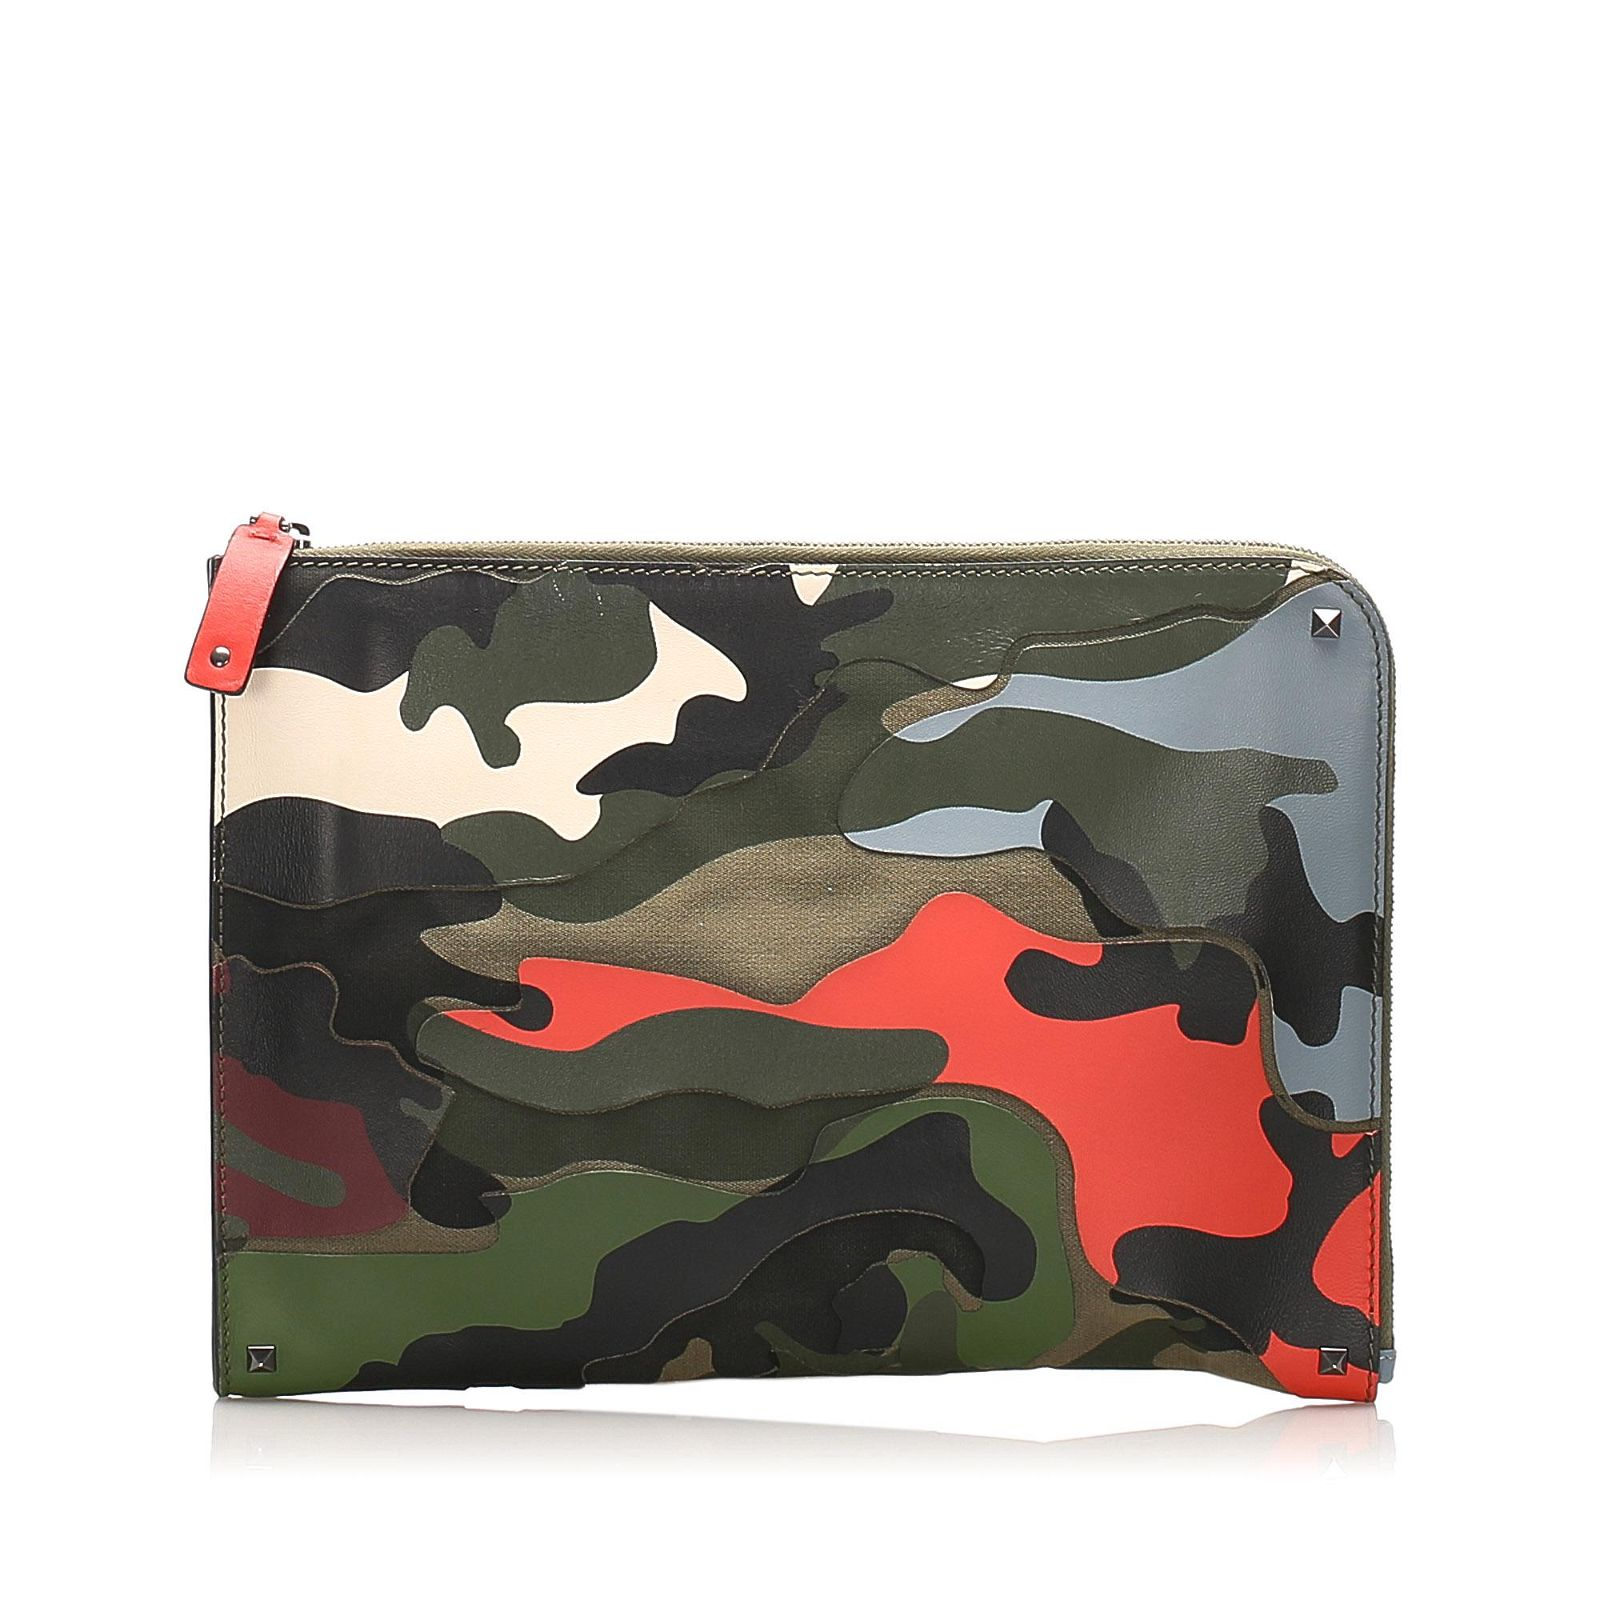 Authentic Valentino Camouflage Leather Clutch Bag